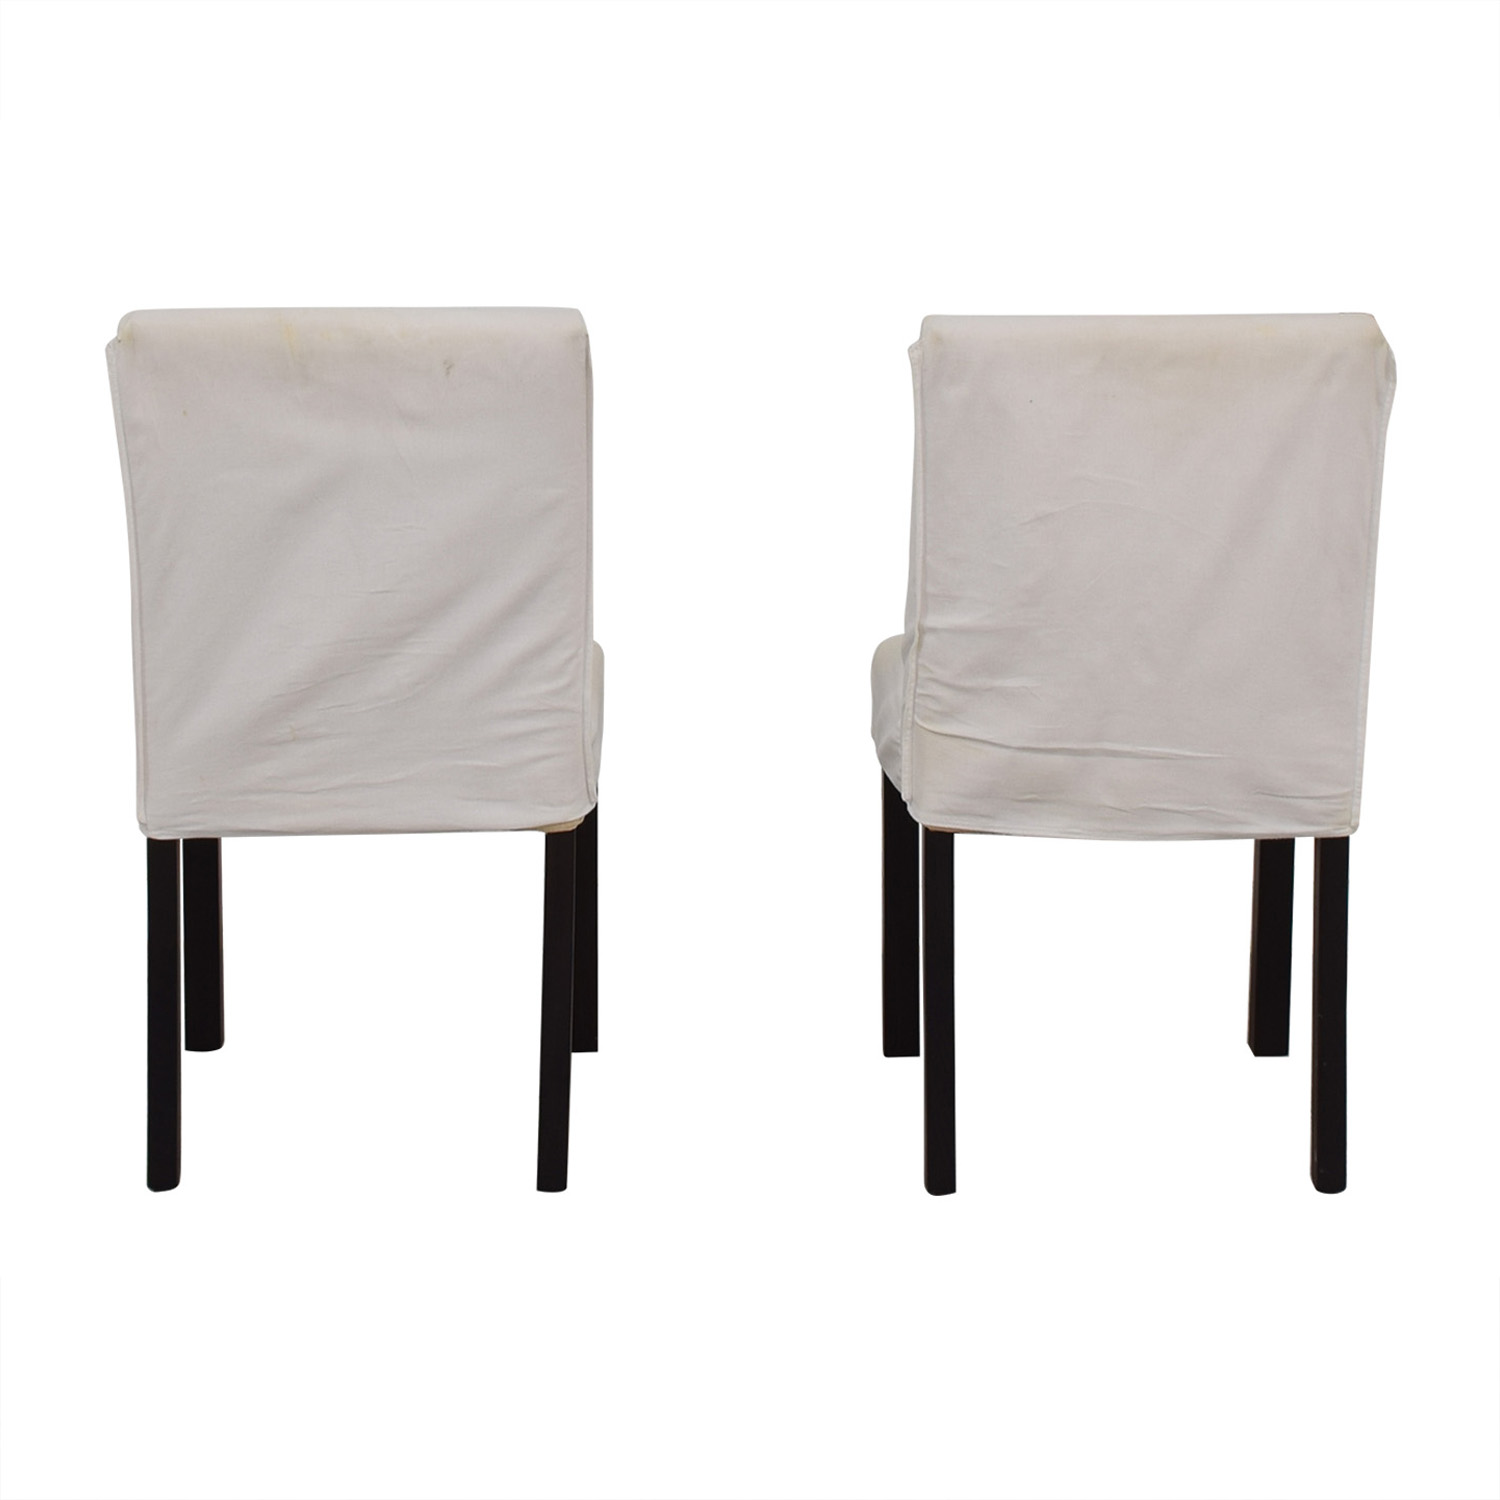 Crate & Barrel White Chairs sale